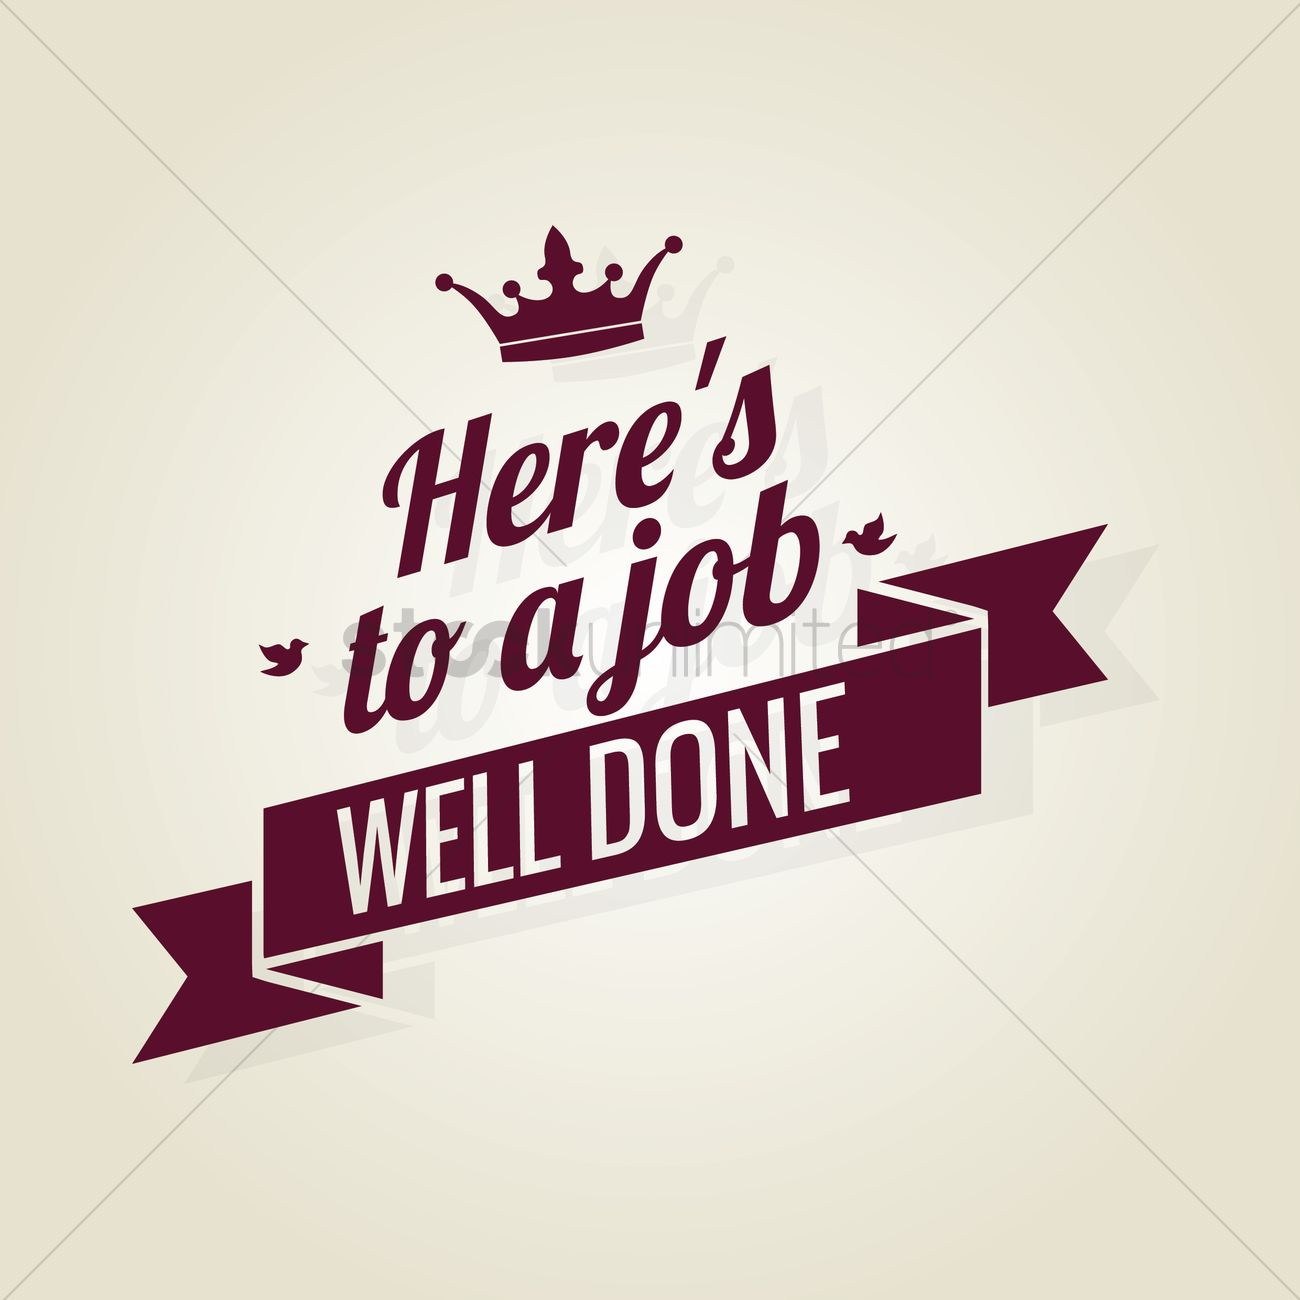 free job well done ribbon vector image 1603666 mobile vectra #2 mobile vectra #2